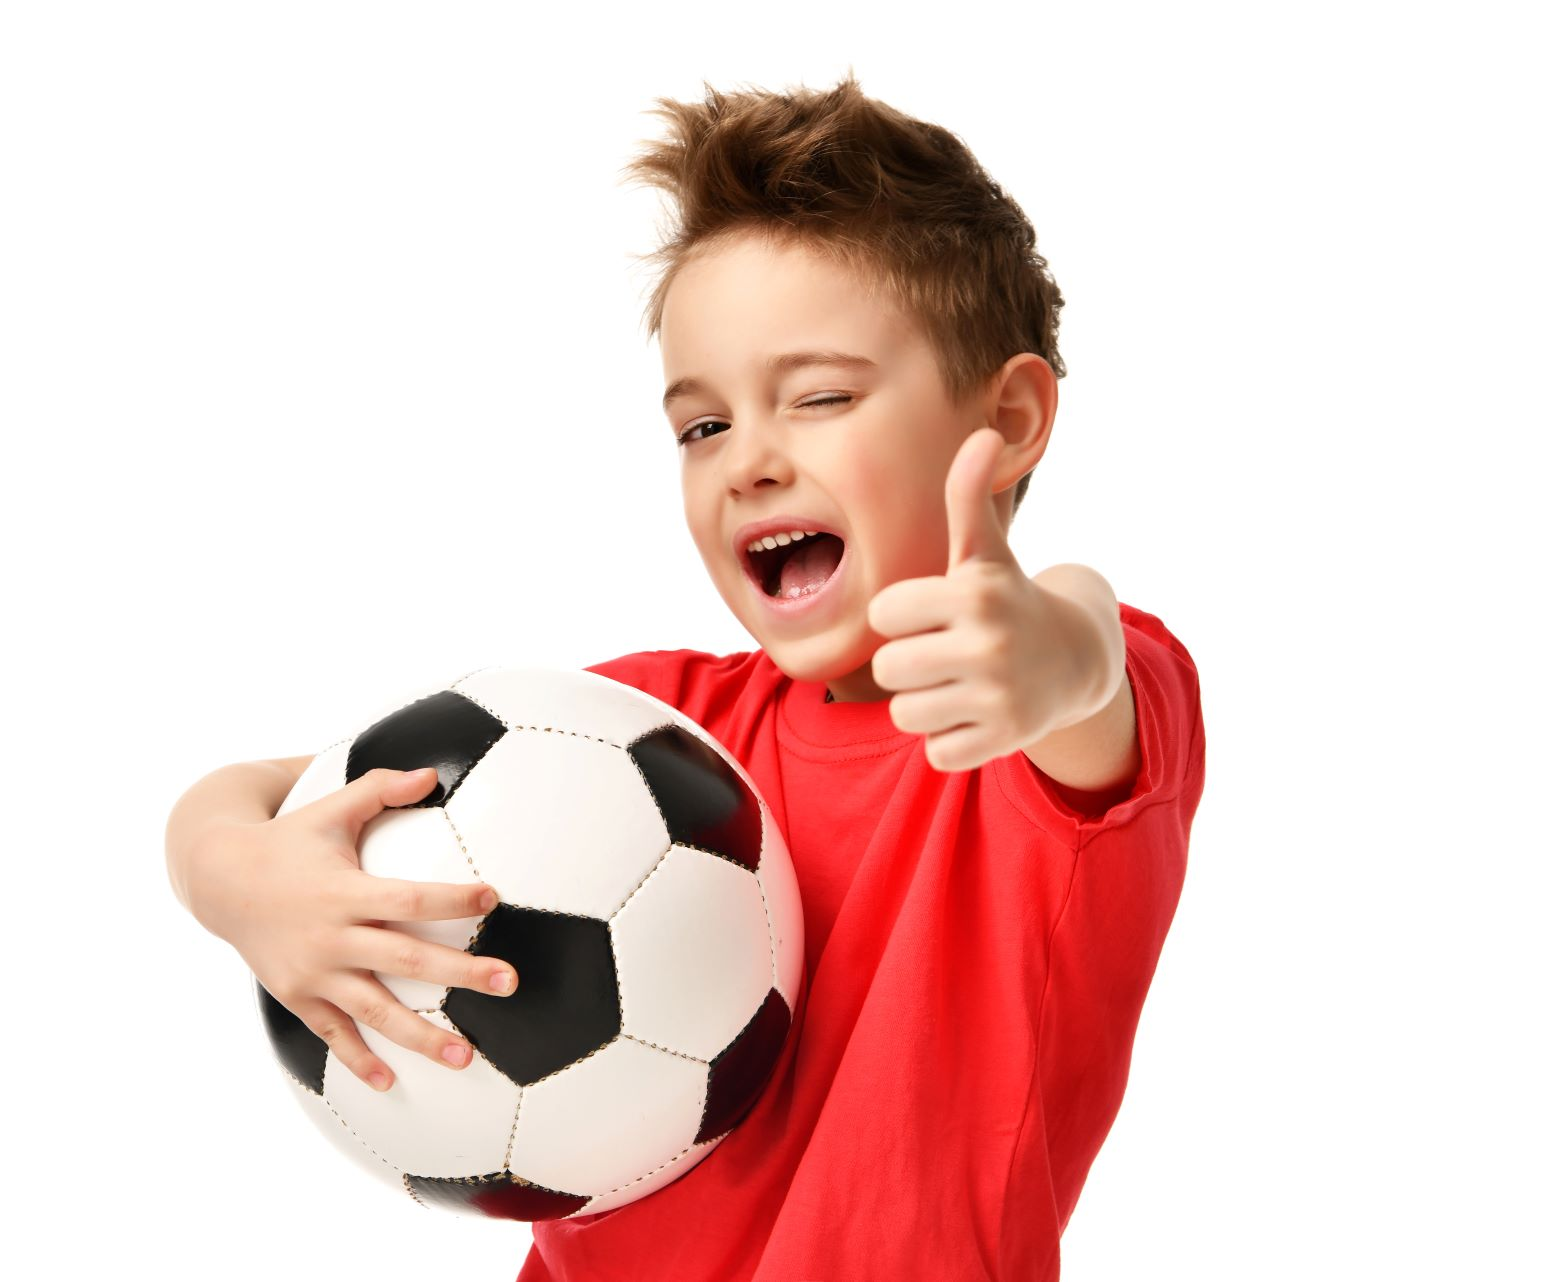 With the proper precautions, your soccer player can happily kick it, injury free!